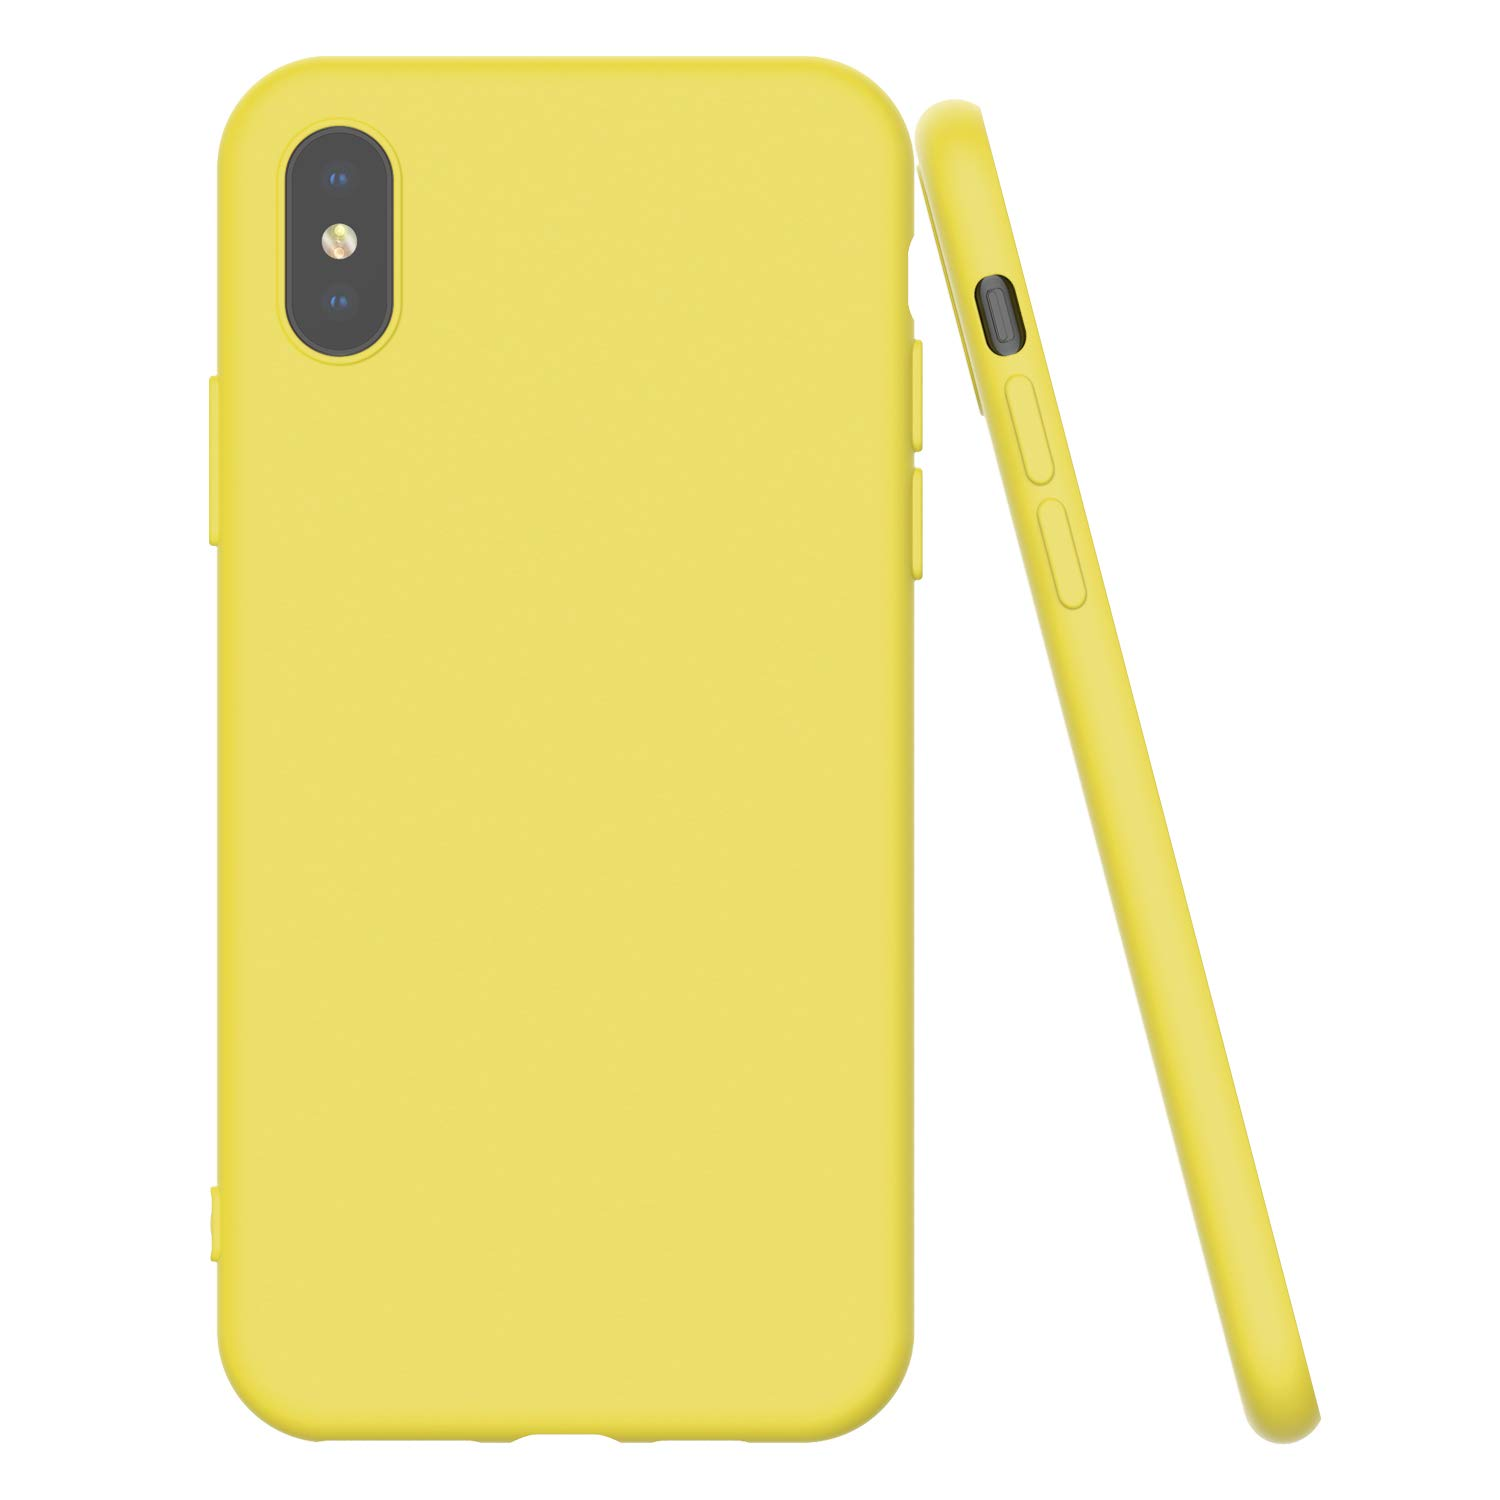 Shamo's Ultra Thin Case for iPhone Xs MAX with Soft Microfiber Cloth Lining Cushion, Slim Fit Flexible Soft TPU - Shockproof Protective Cover - Matte Pastel Color (Yellow)